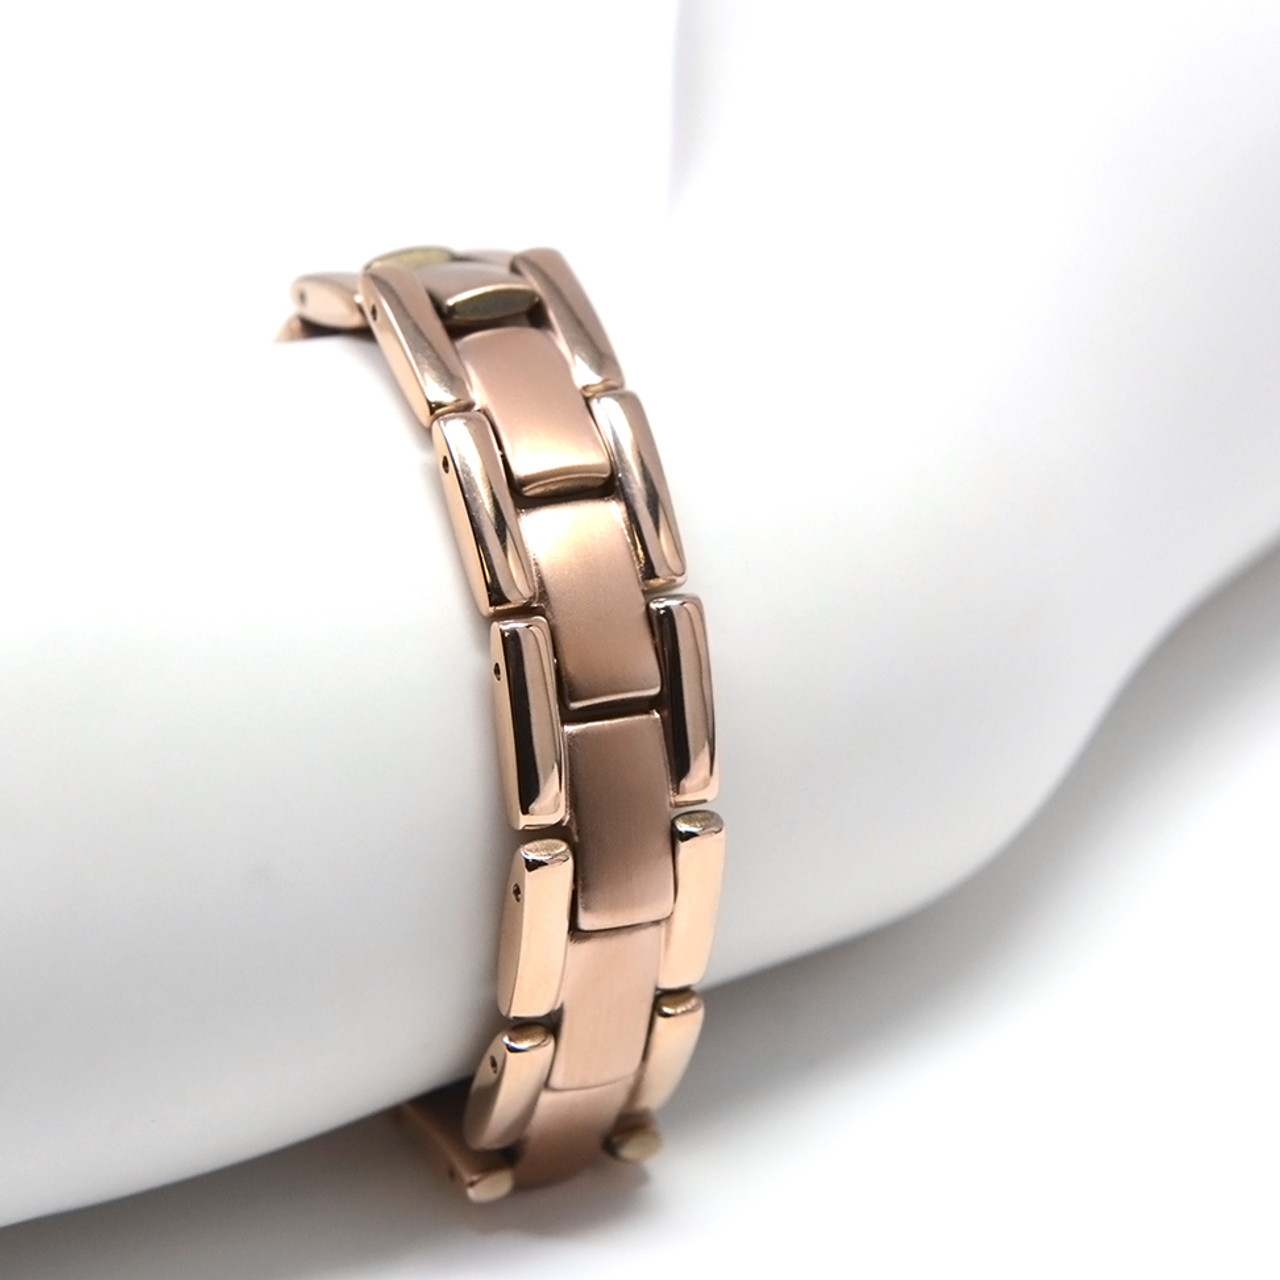 titanium bracelet r element colored dsc magnetic gauss rose quad men s mens novoa web gold jewelry